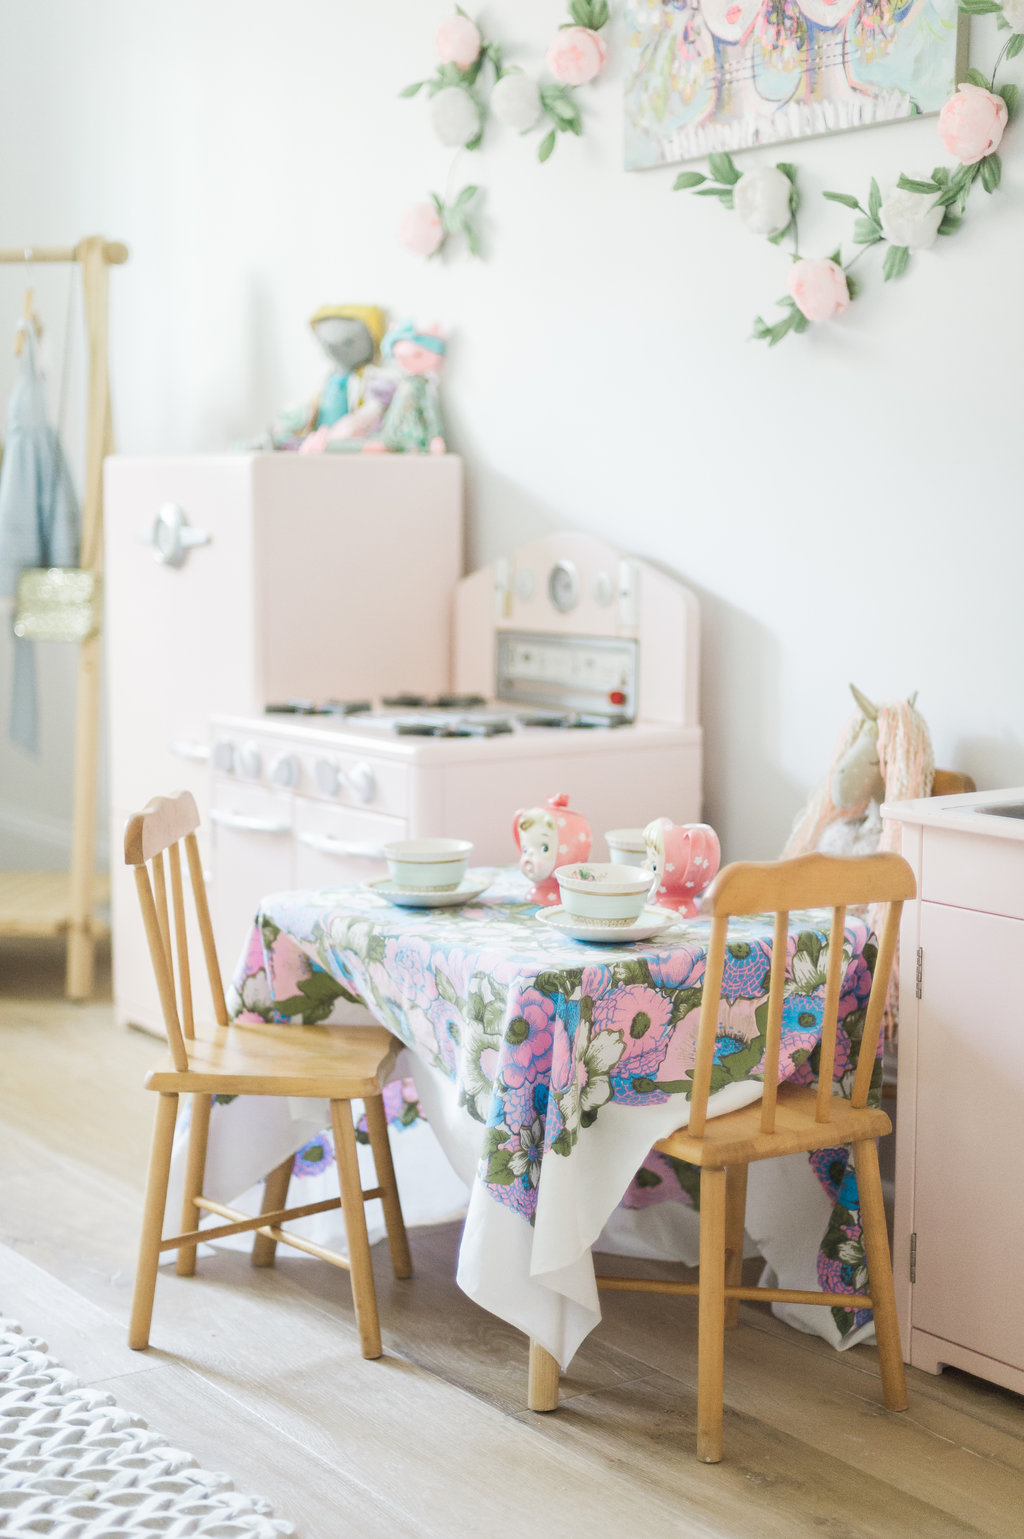 2) Little Girl Room Ideas With Purpose: Art Work